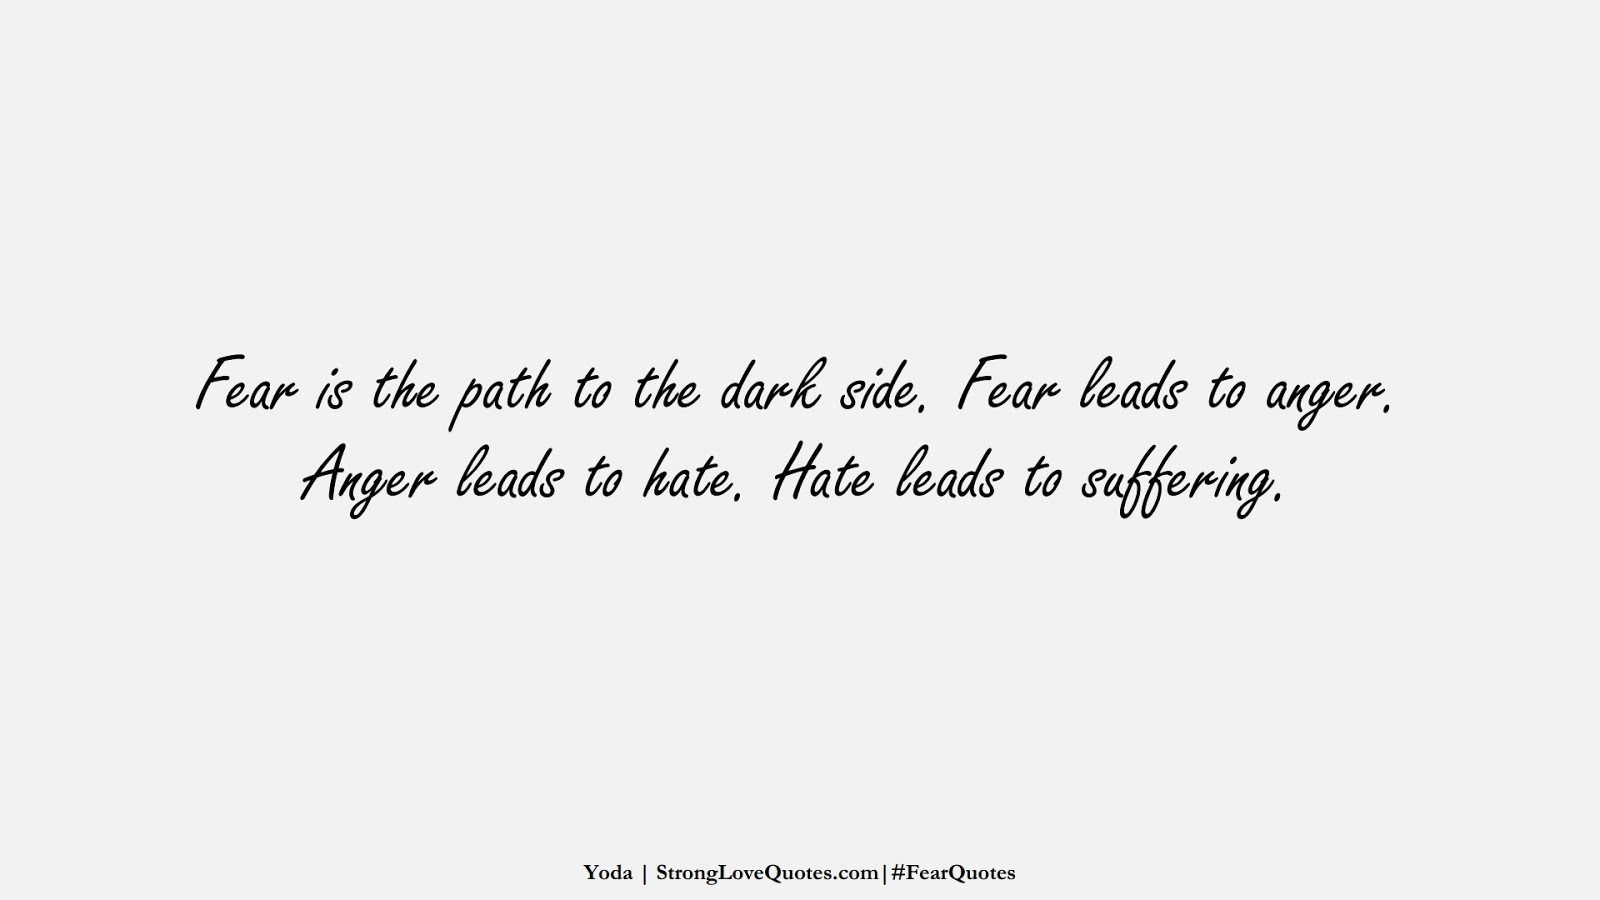 Fear is the path to the dark side. Fear leads to anger. Anger leads to hate. Hate leads to suffering. (Yoda);  #FearQuotes